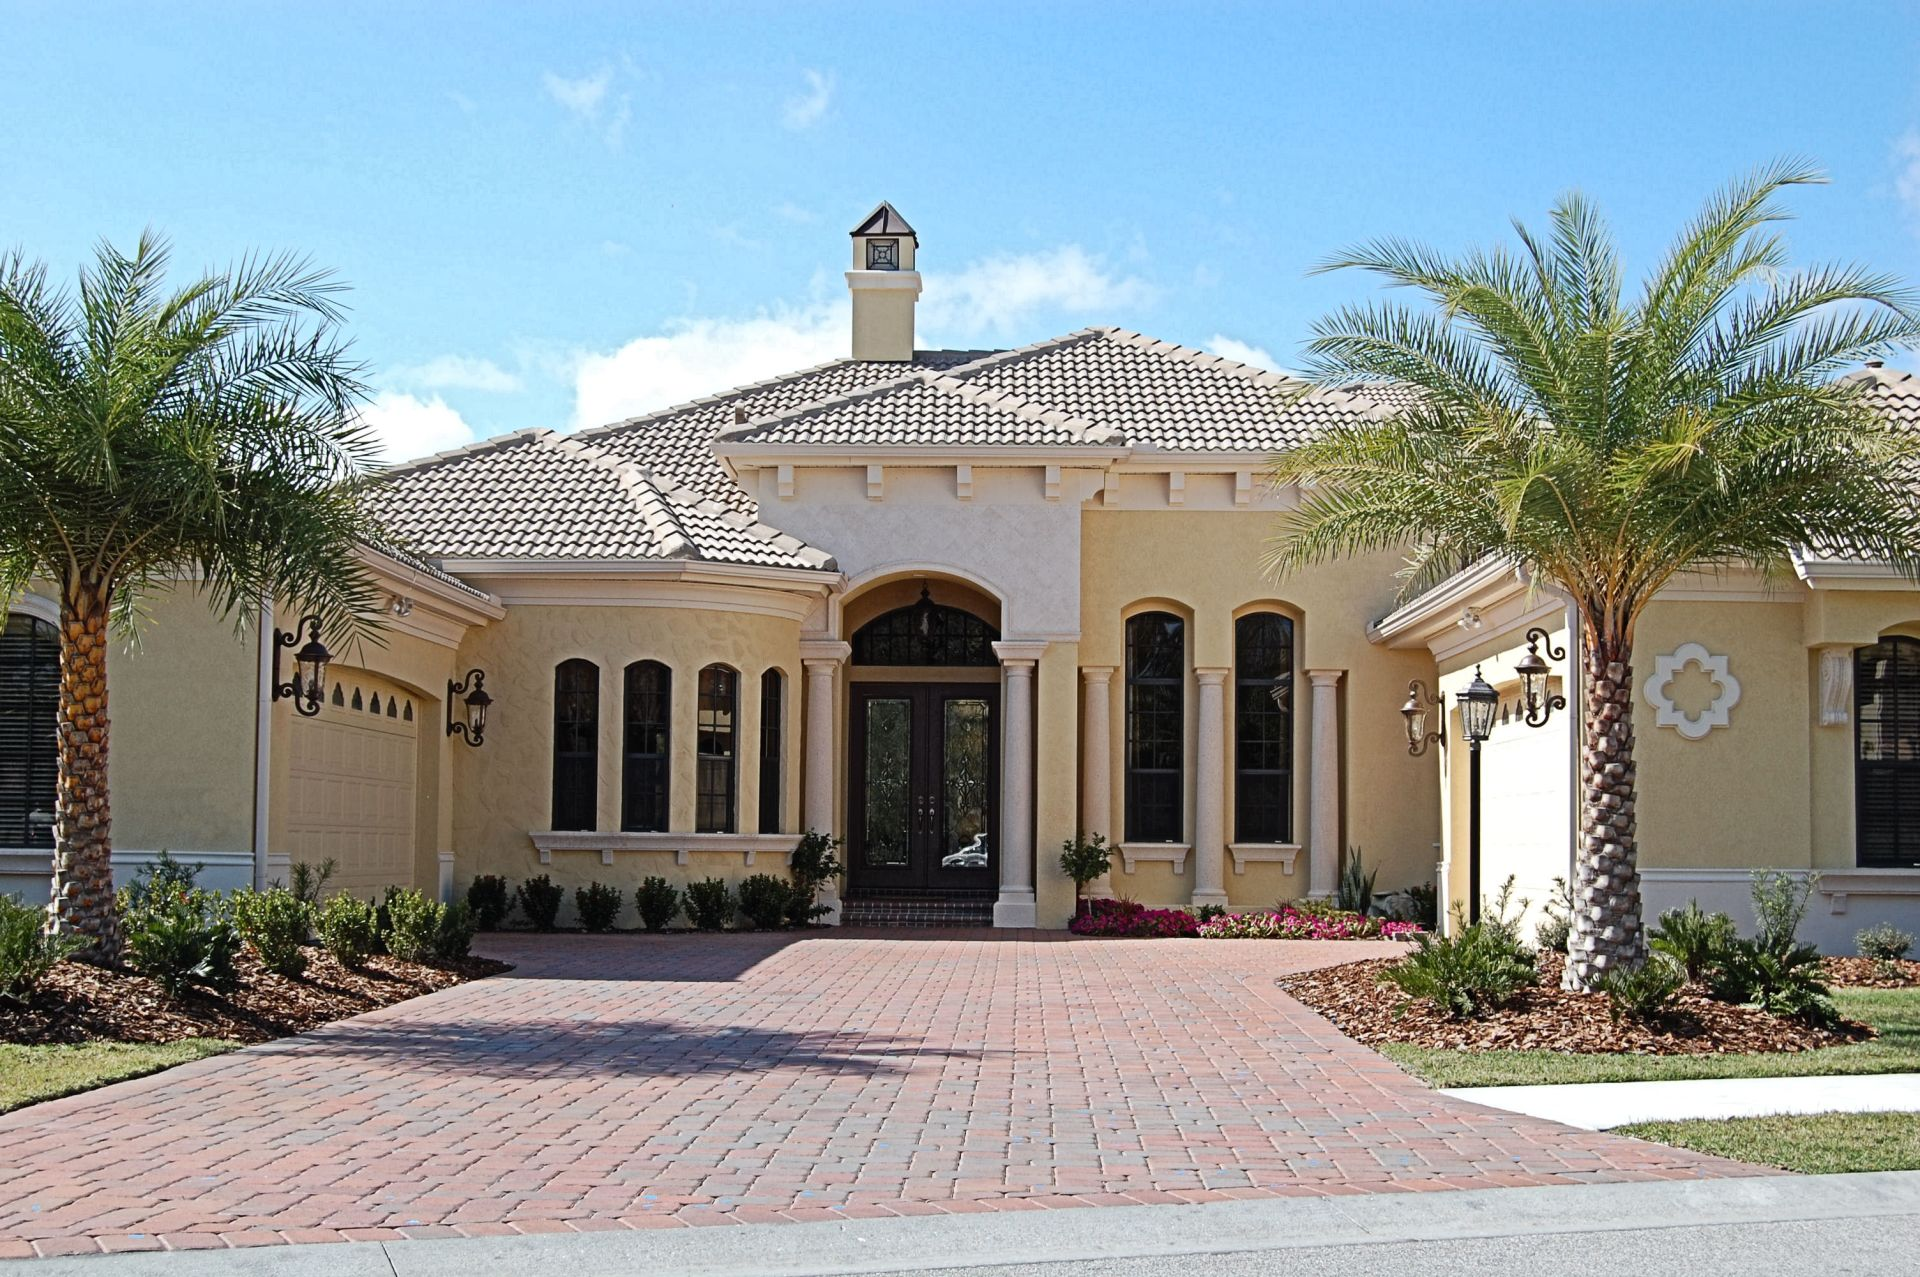 Cypress Head Homes for Sale in Parkland